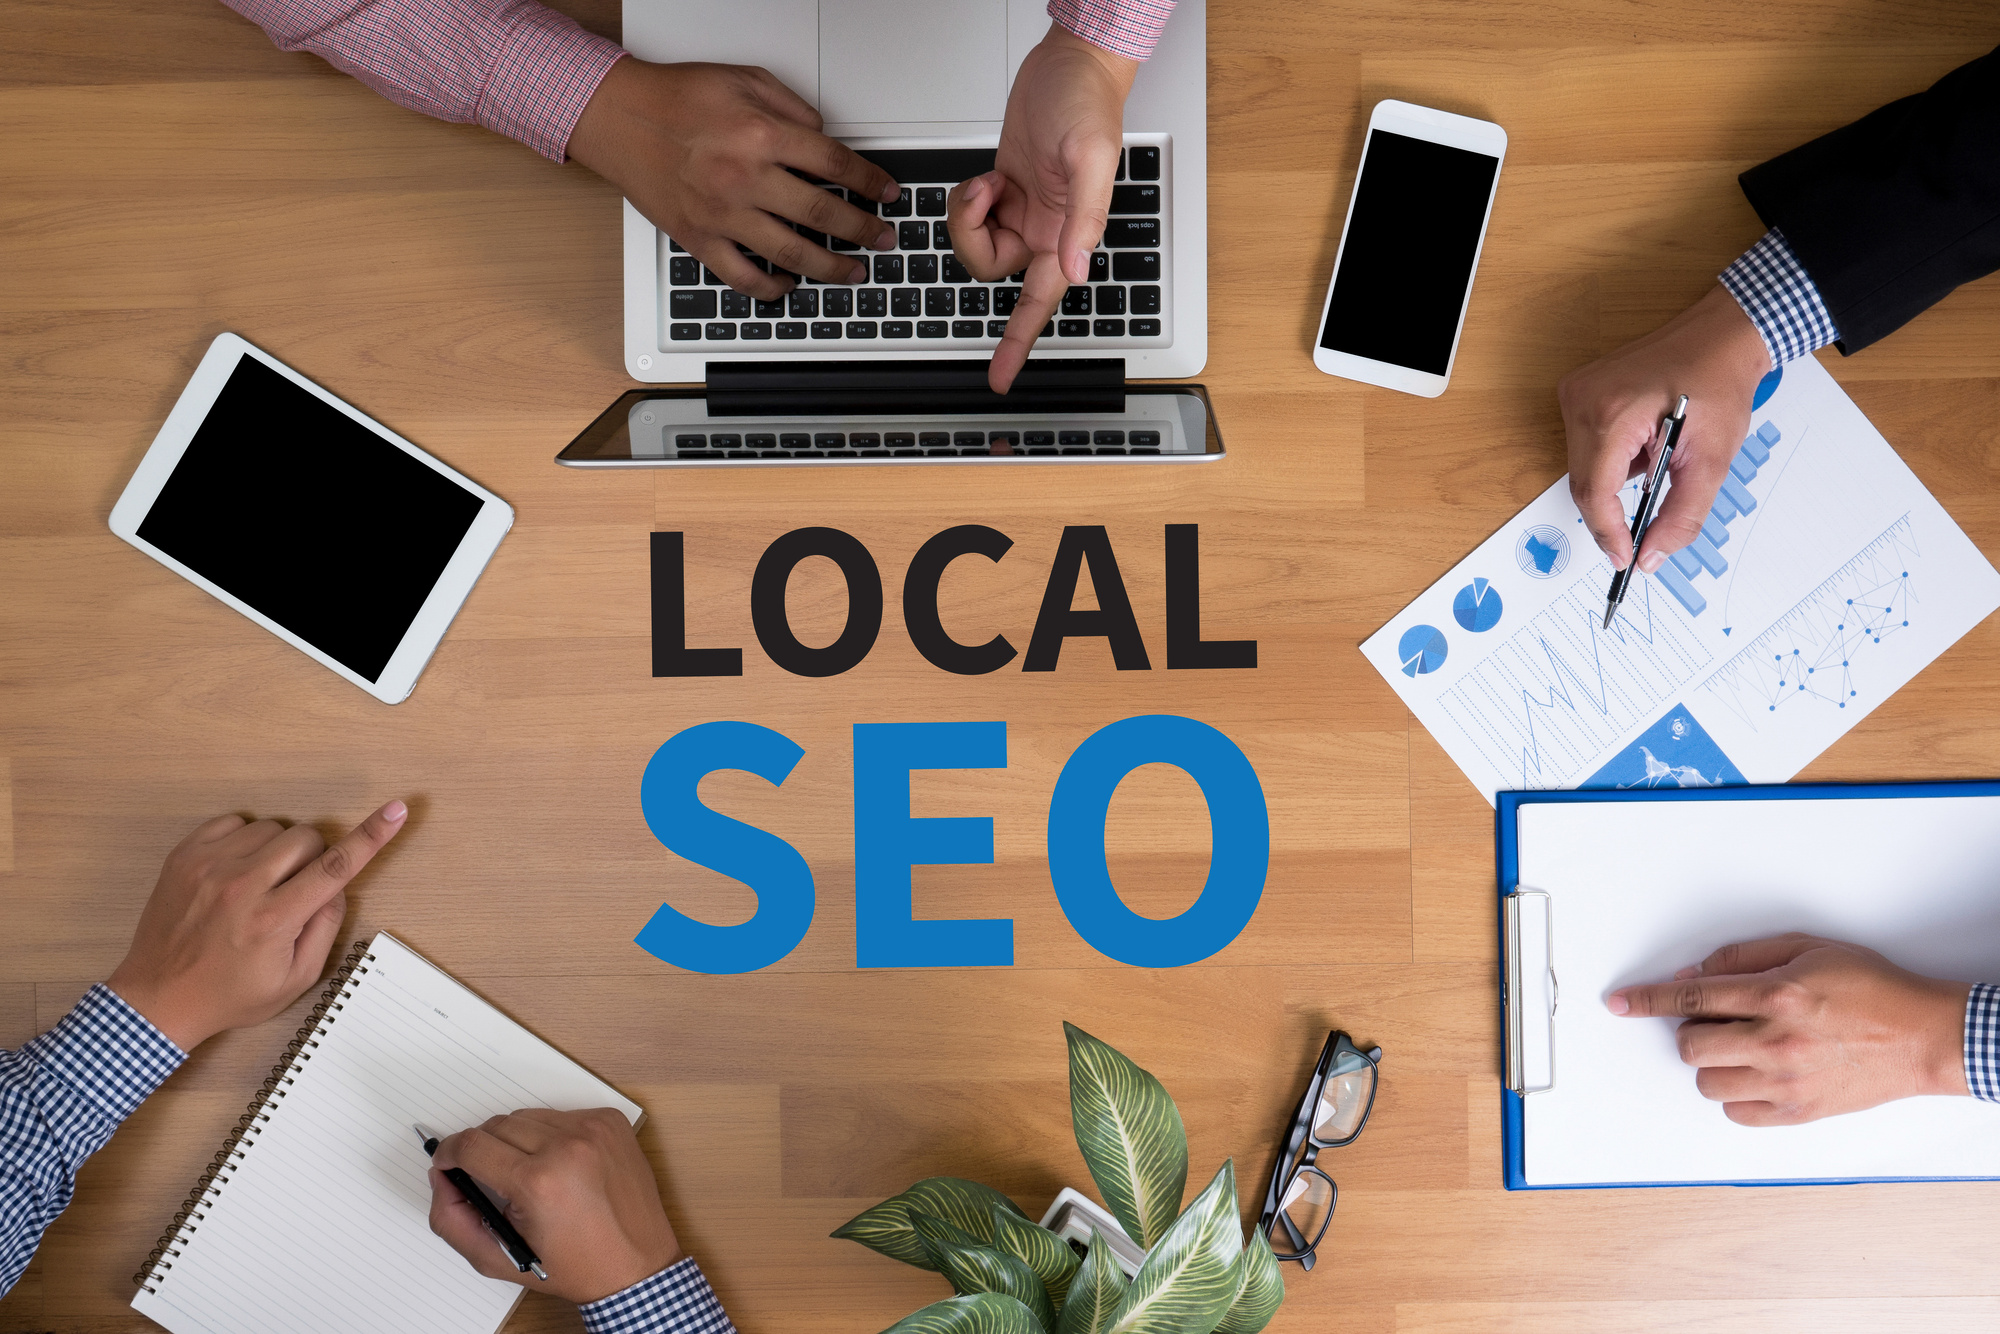 Local SEO Concep